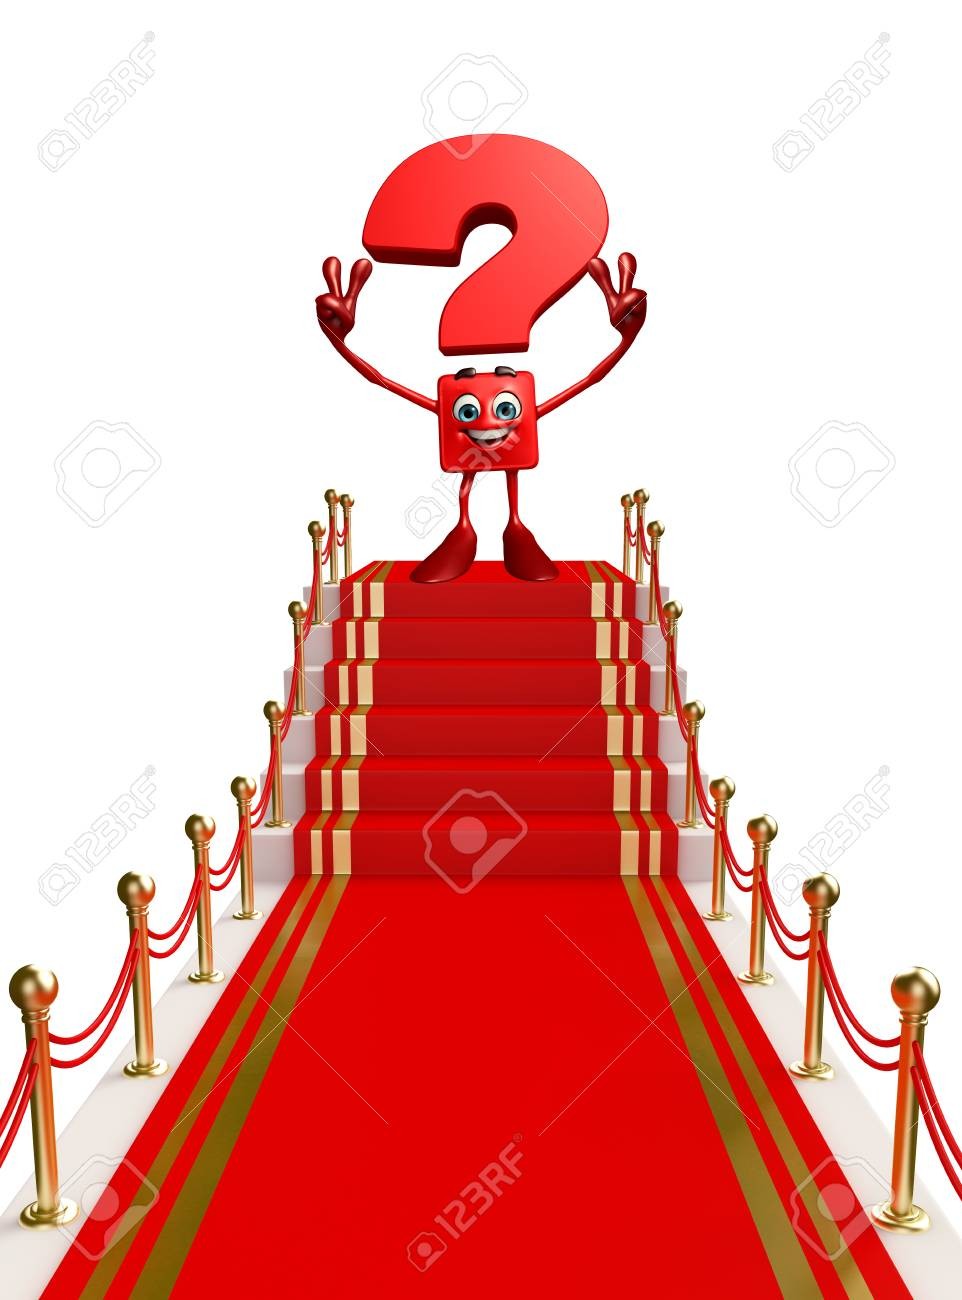 Cartoon Character Of Question Mark With Red Carpet Stock Photo Picture And Royalty Free Image Image 31254825